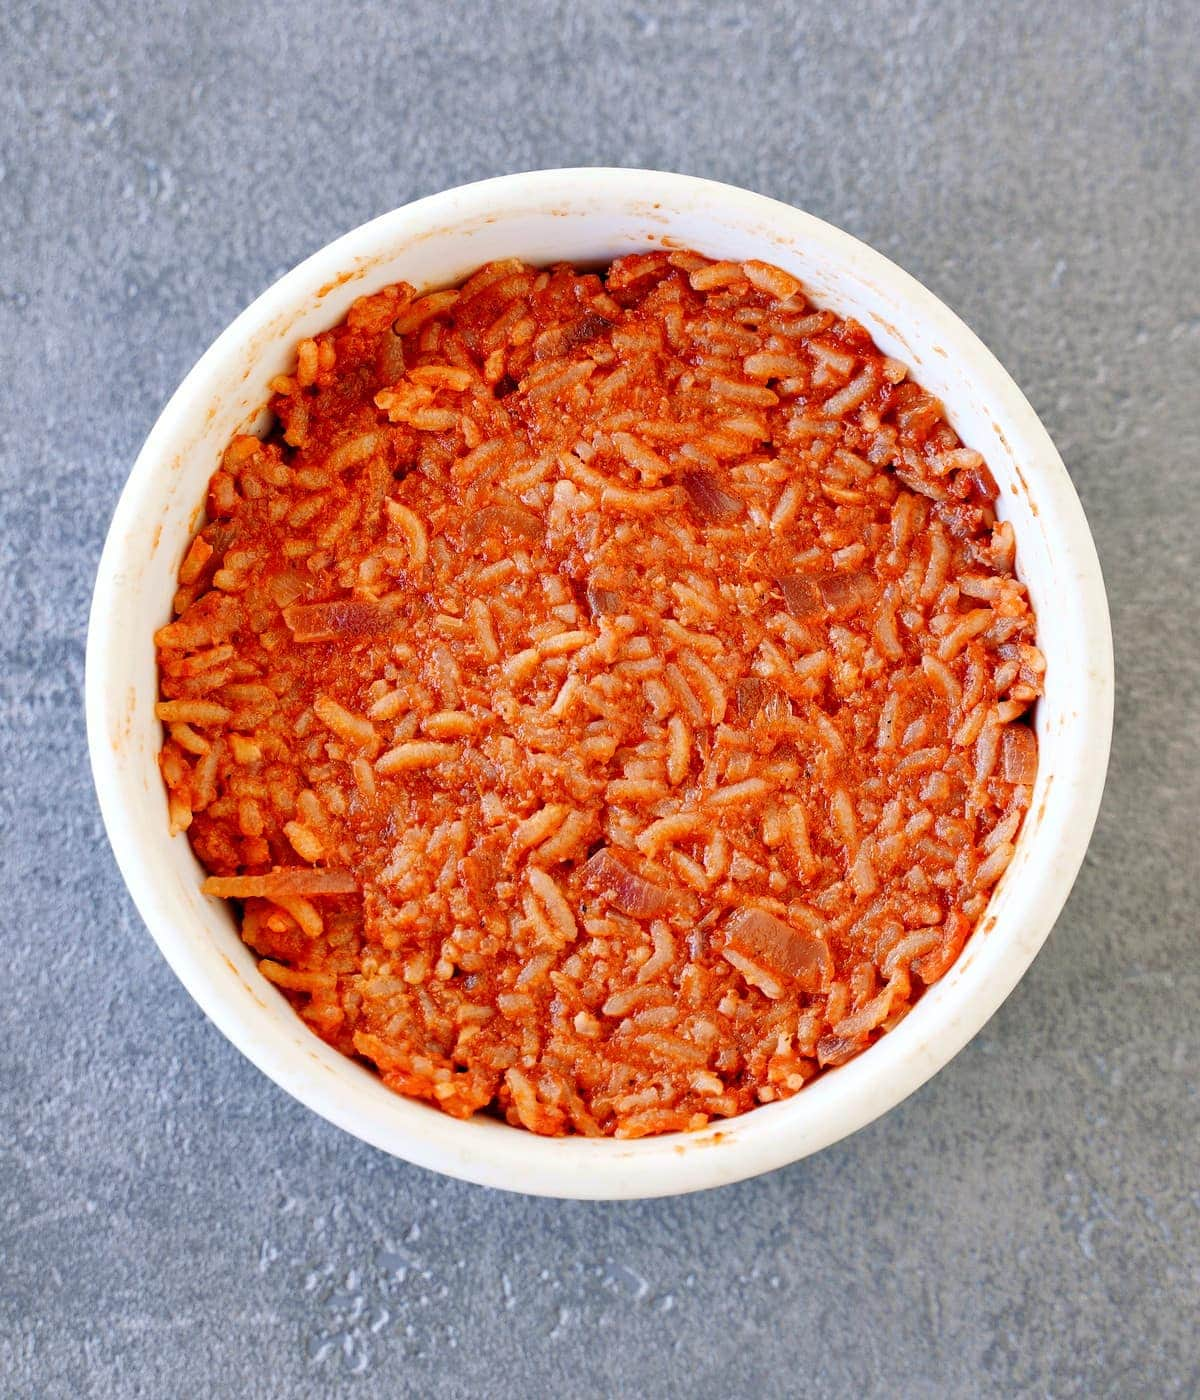 red rice in white bowl from above